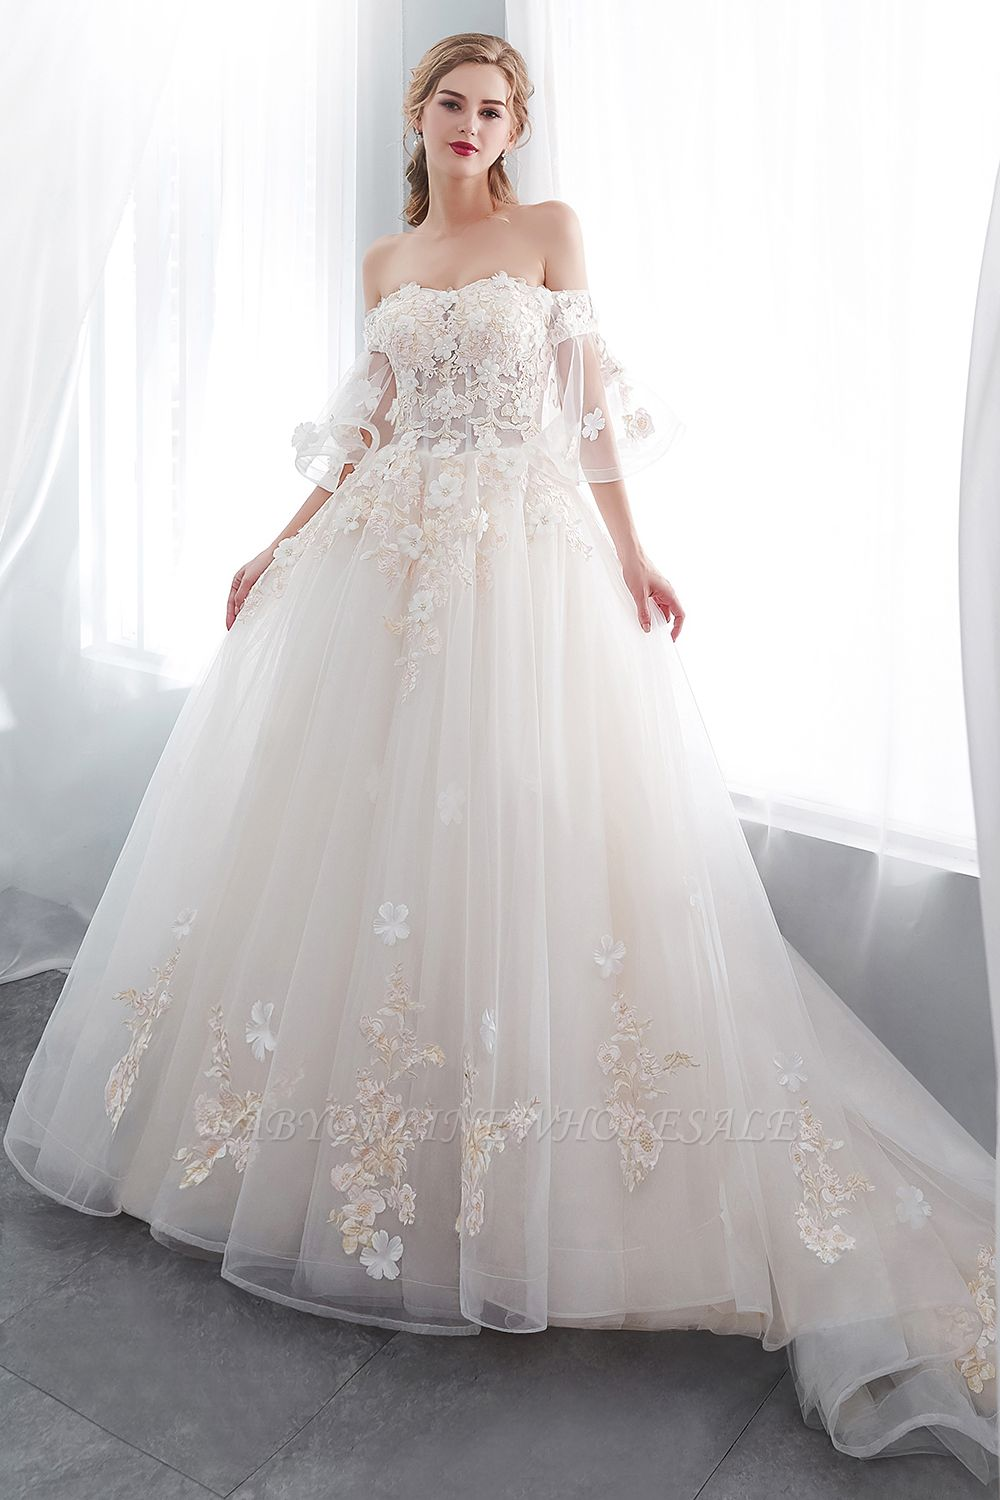 NANCE | Ball Gown Off-the-shoulder Floor Length Appliques Tulle Wedding Dresses